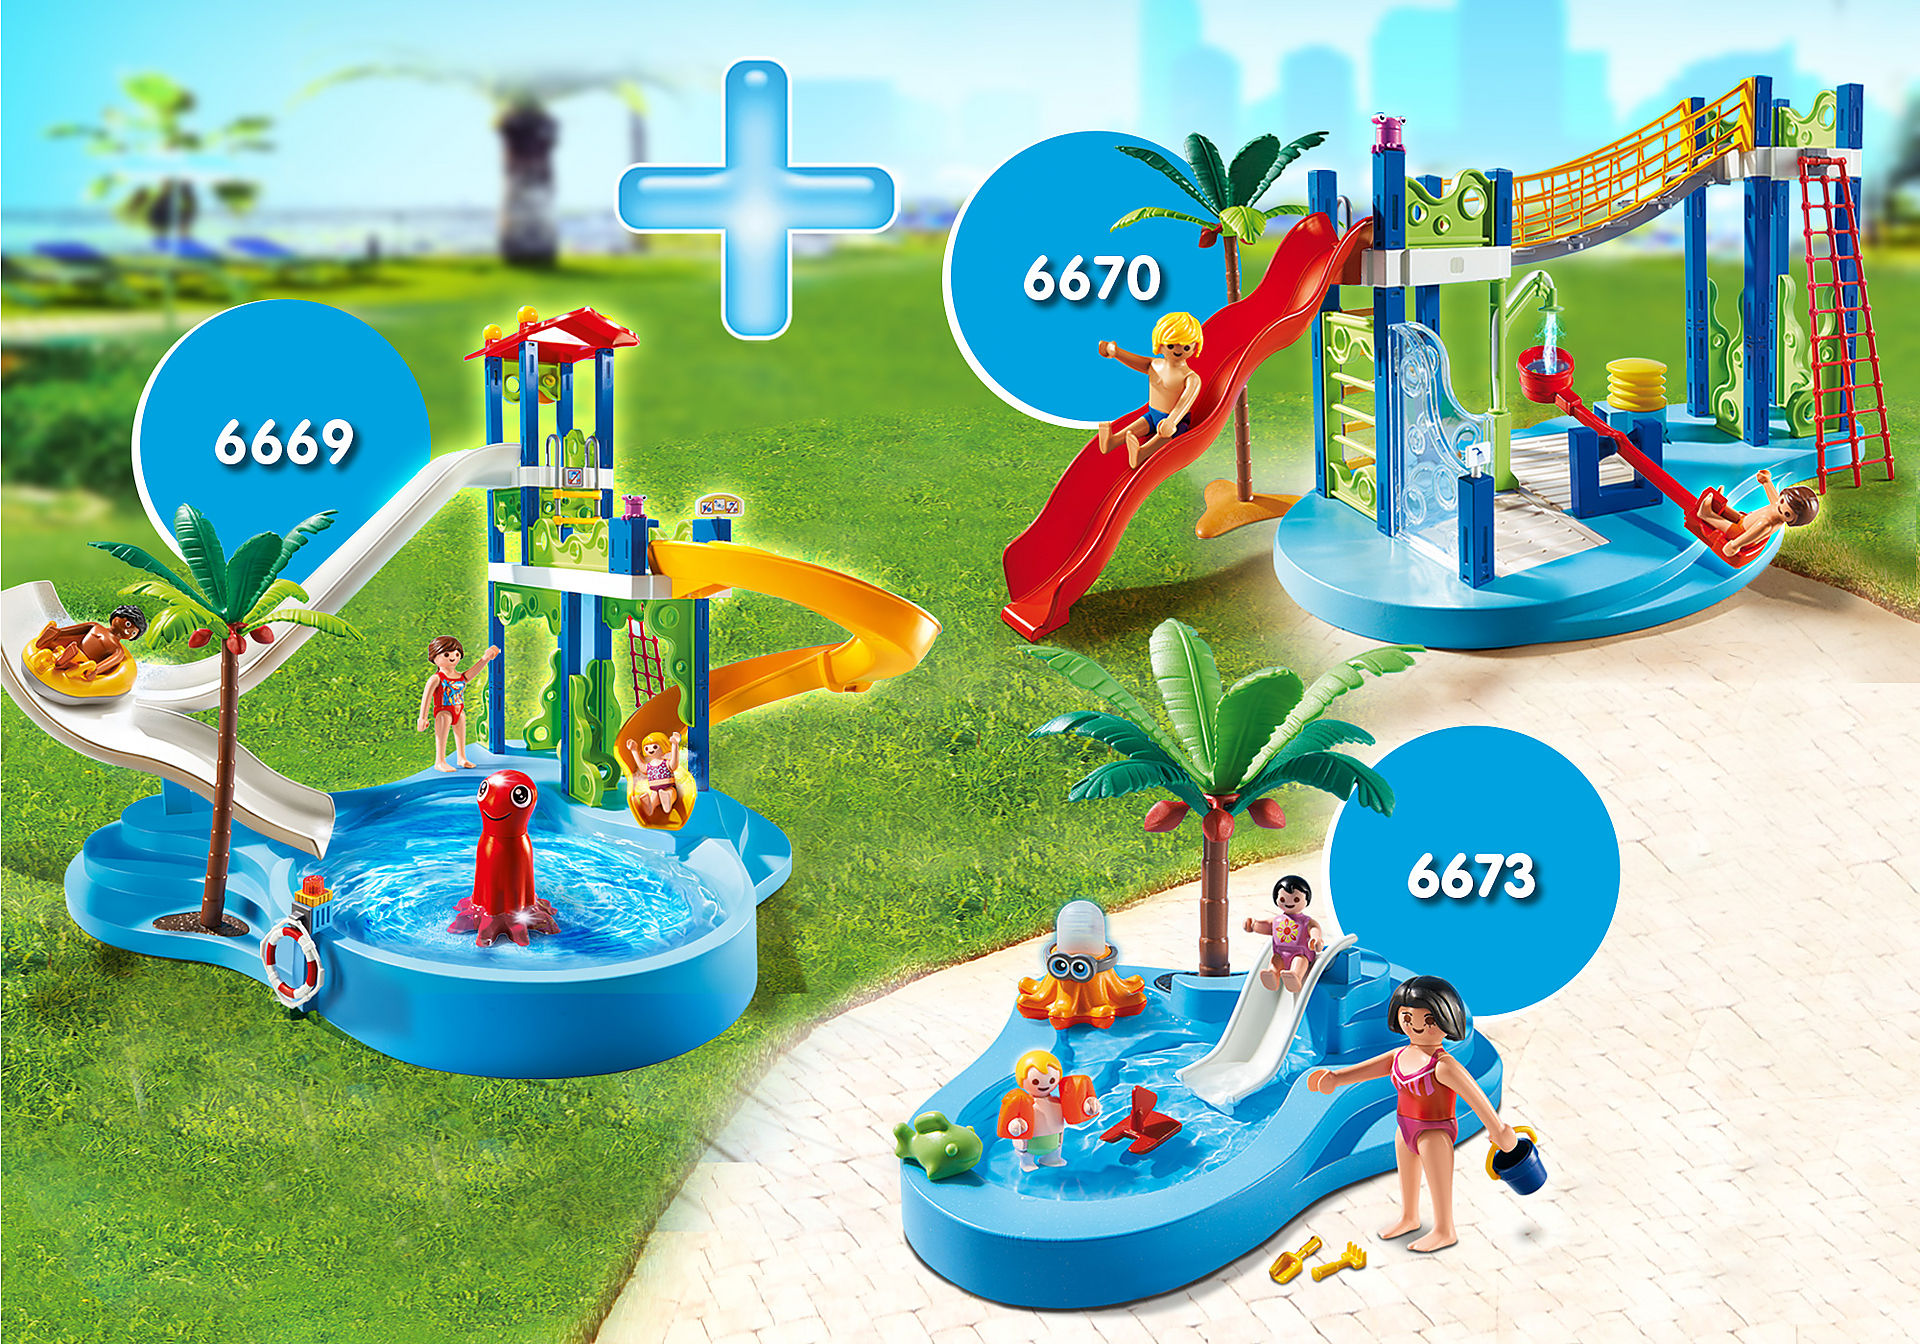 http://media.playmobil.com/i/playmobil/PM1907G_product_detail/Bundle Aquapark